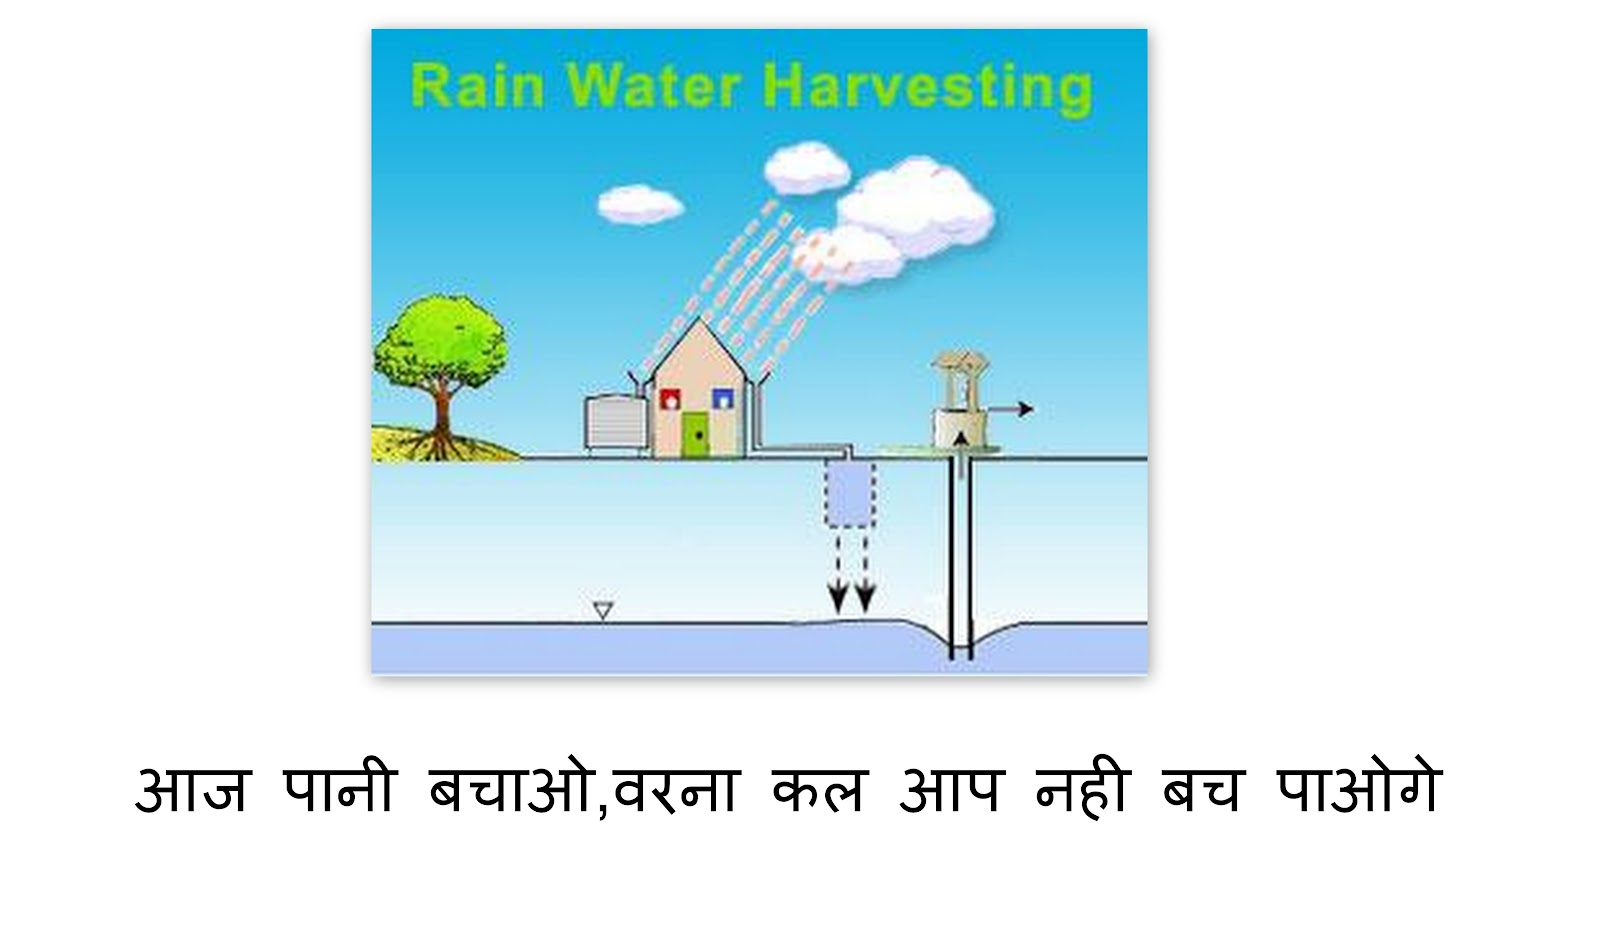 An essay on rainwater harvesting